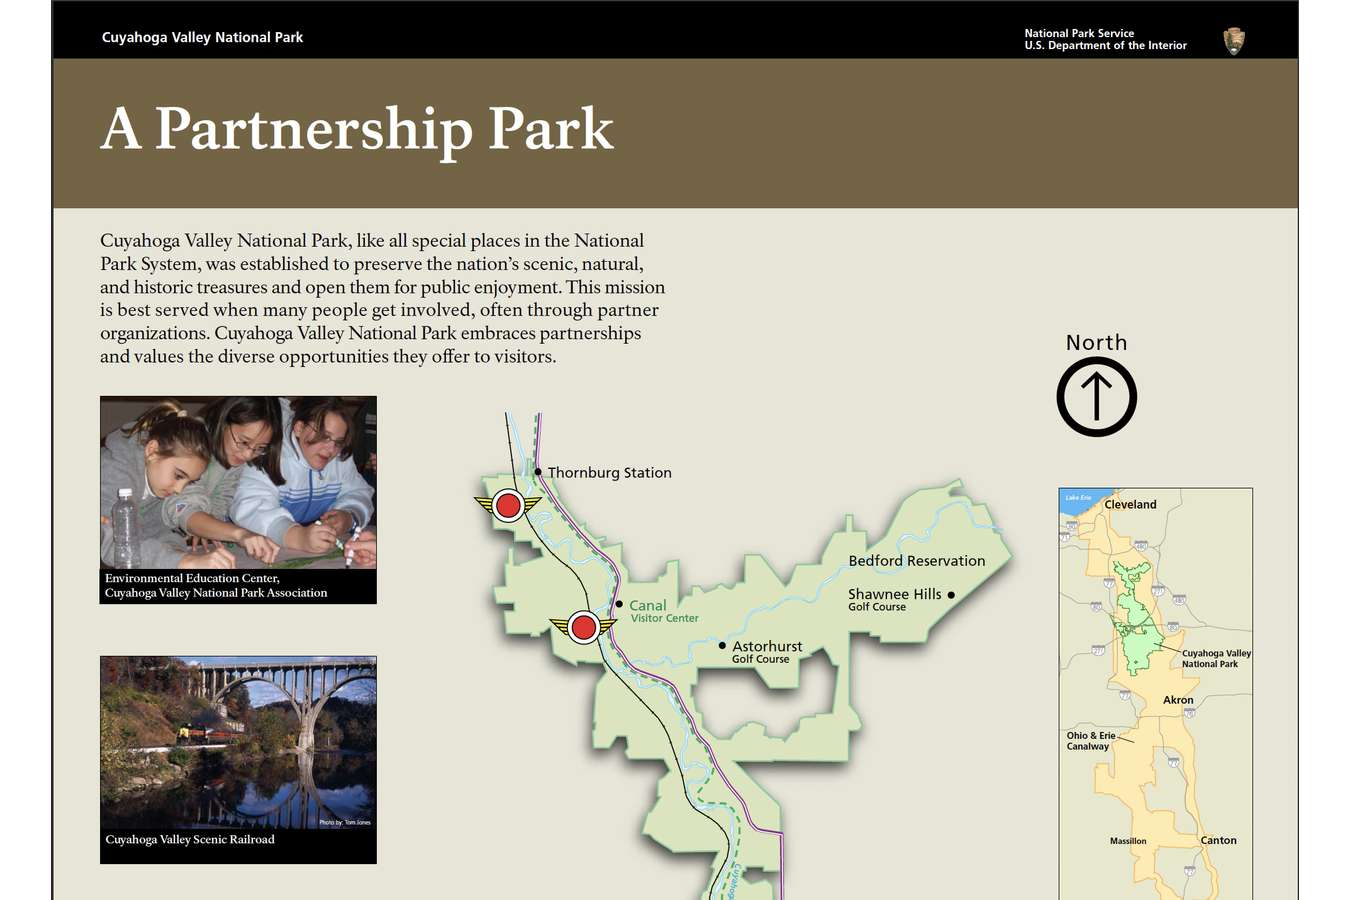 CUVANPS6 : The partnership proposition is a successful way for parks to increase revenue and attendance